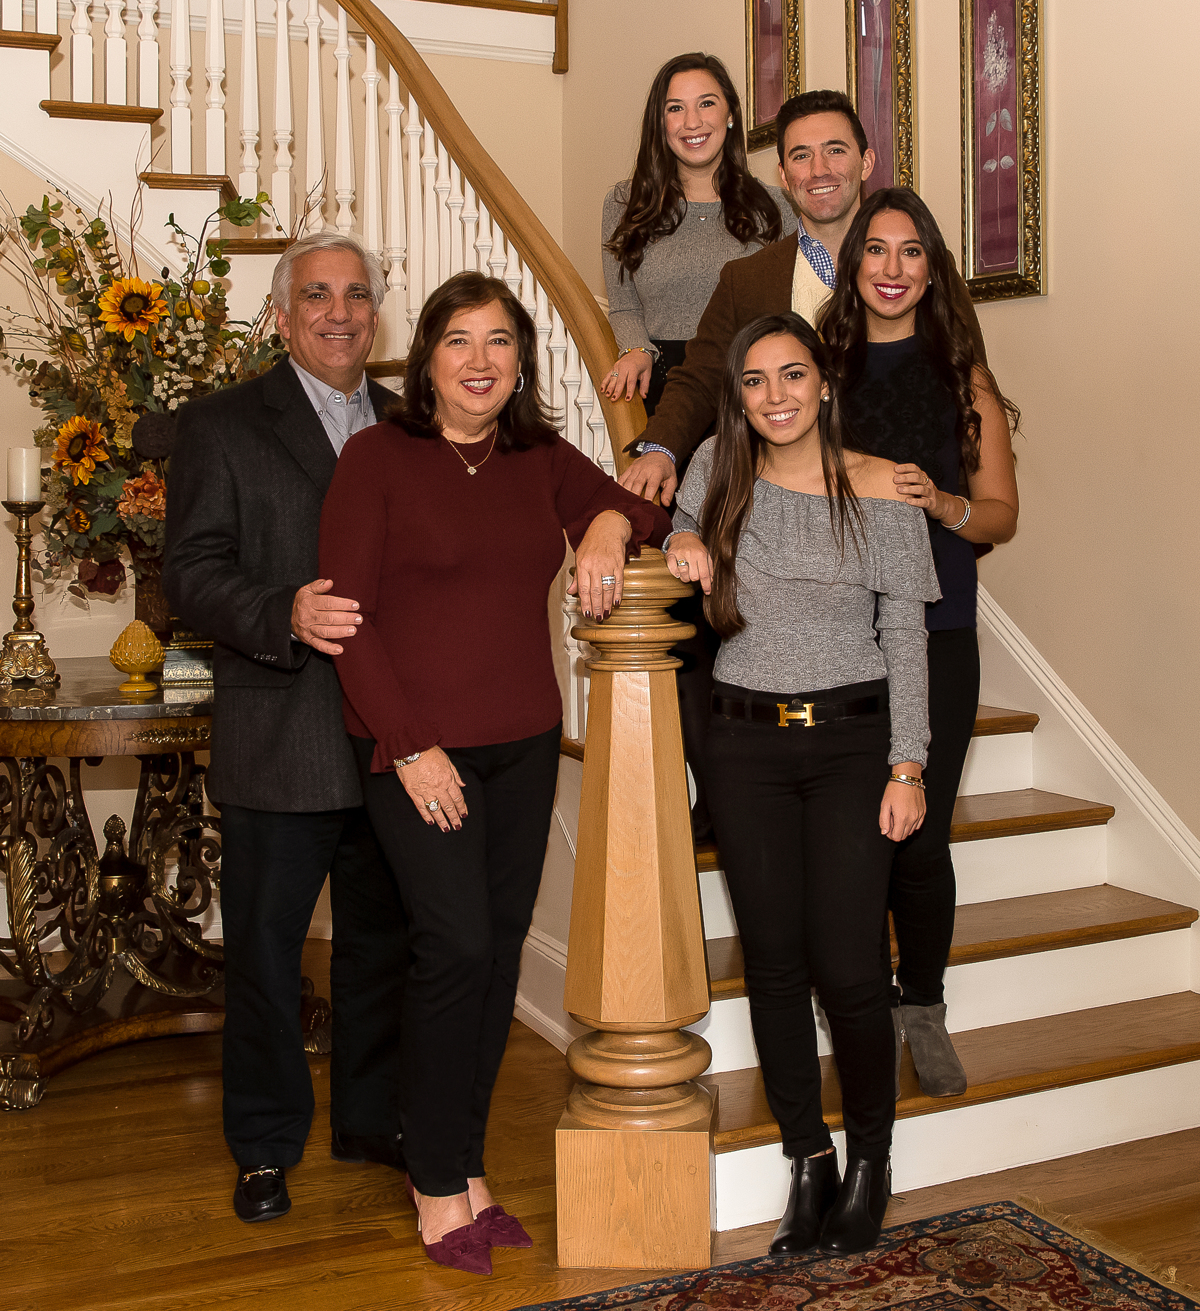 Image depicting the Maida family in their home: James '85 '17P '19P, Sharon '17P '19P, Alexis '19, Lindsay, Nicholas, and Lauren '17.